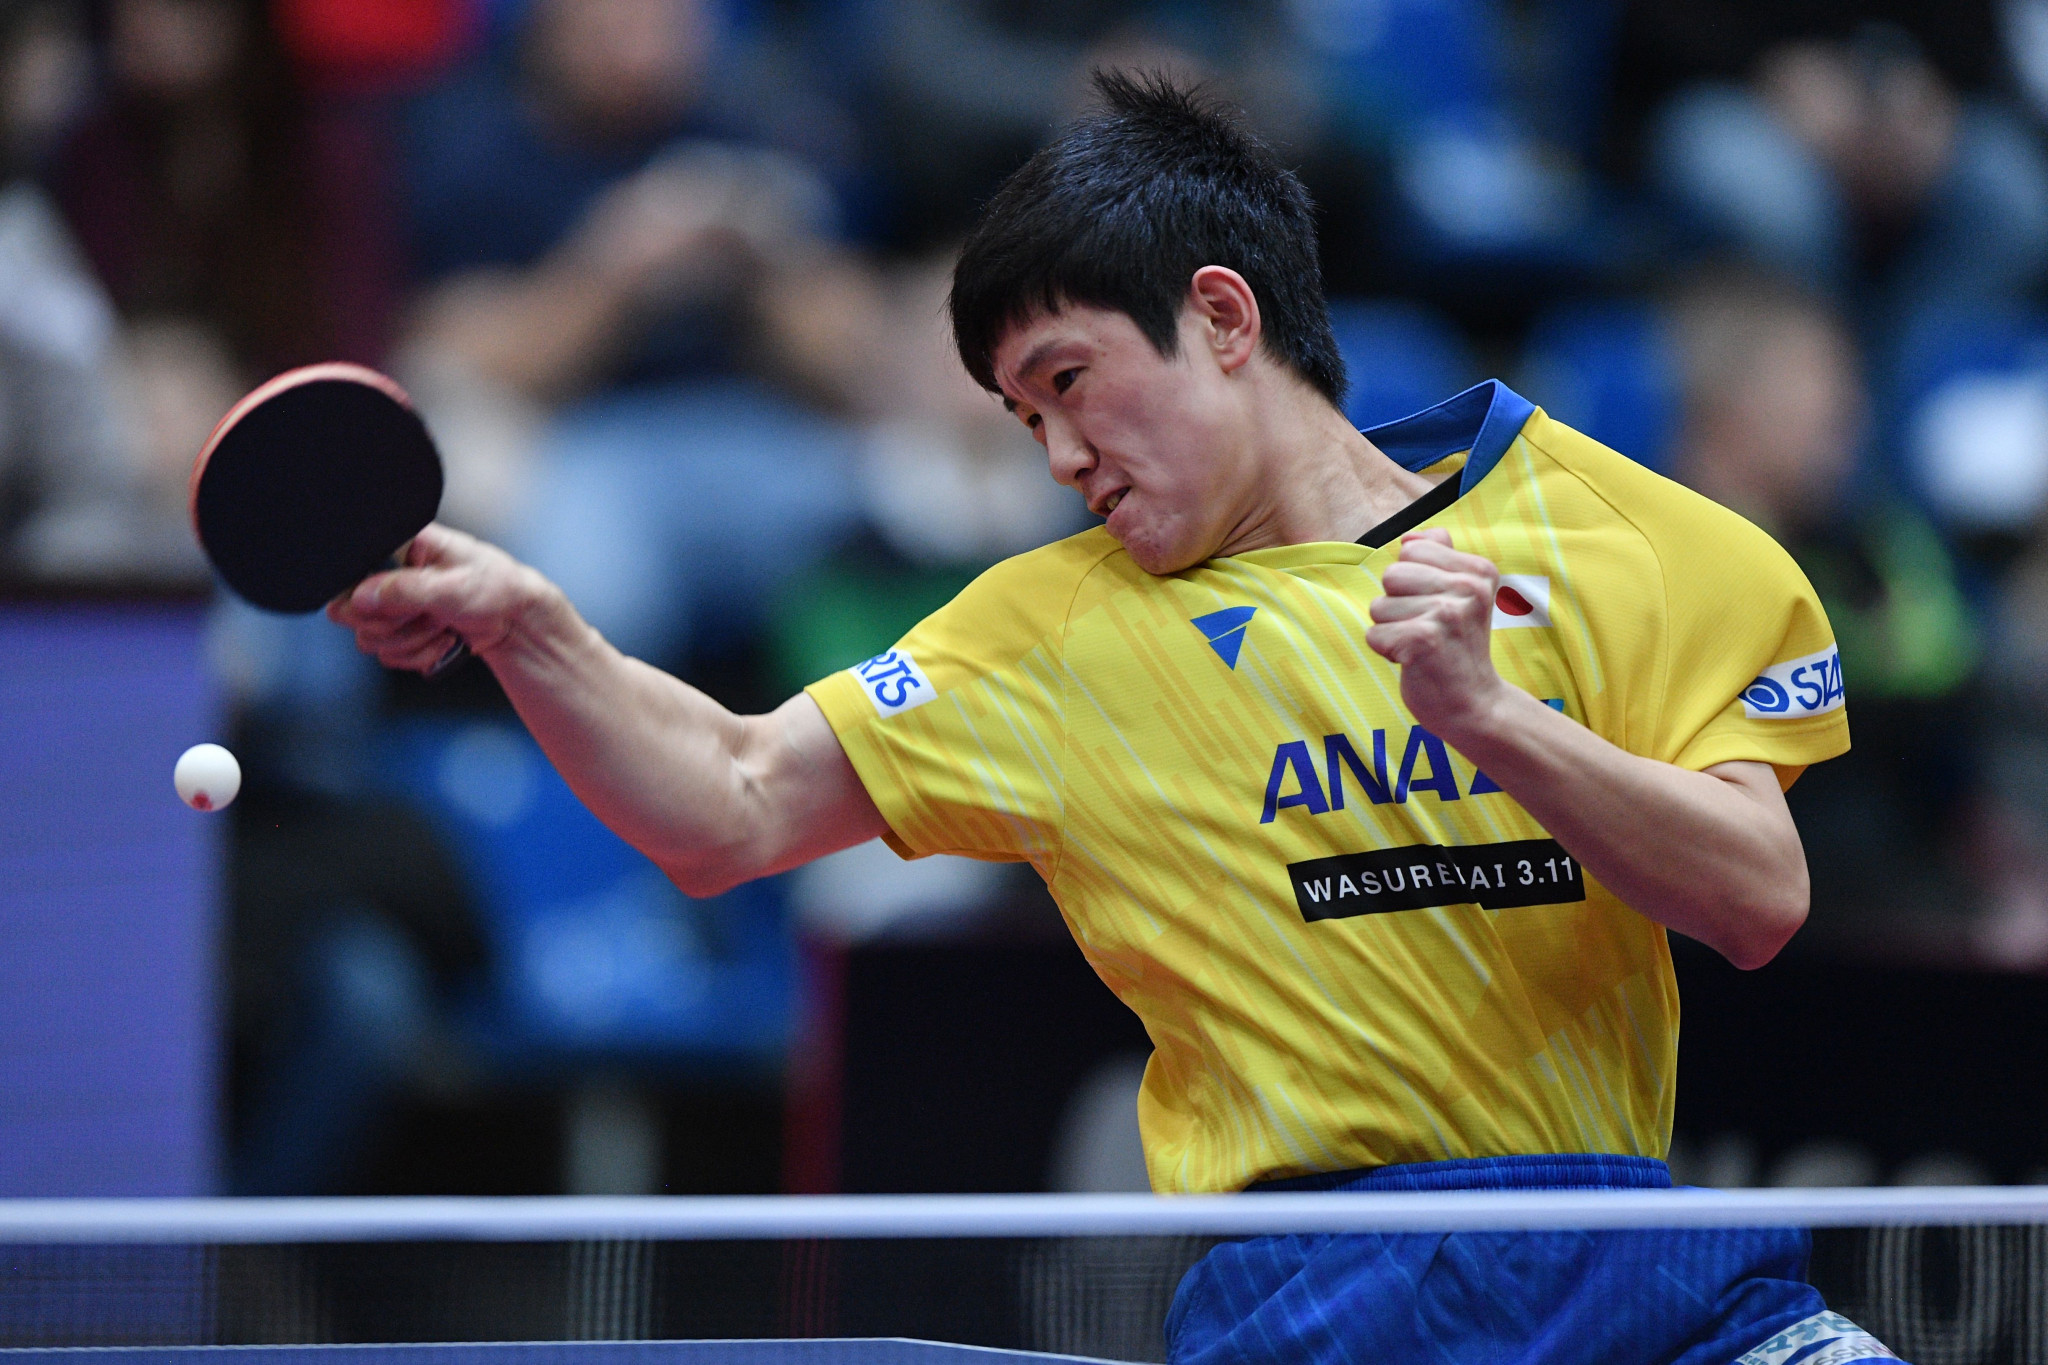 Men's singles top seed Tomokazu Harimoto reached the last eight on a successful day for Japan ©Getty Images